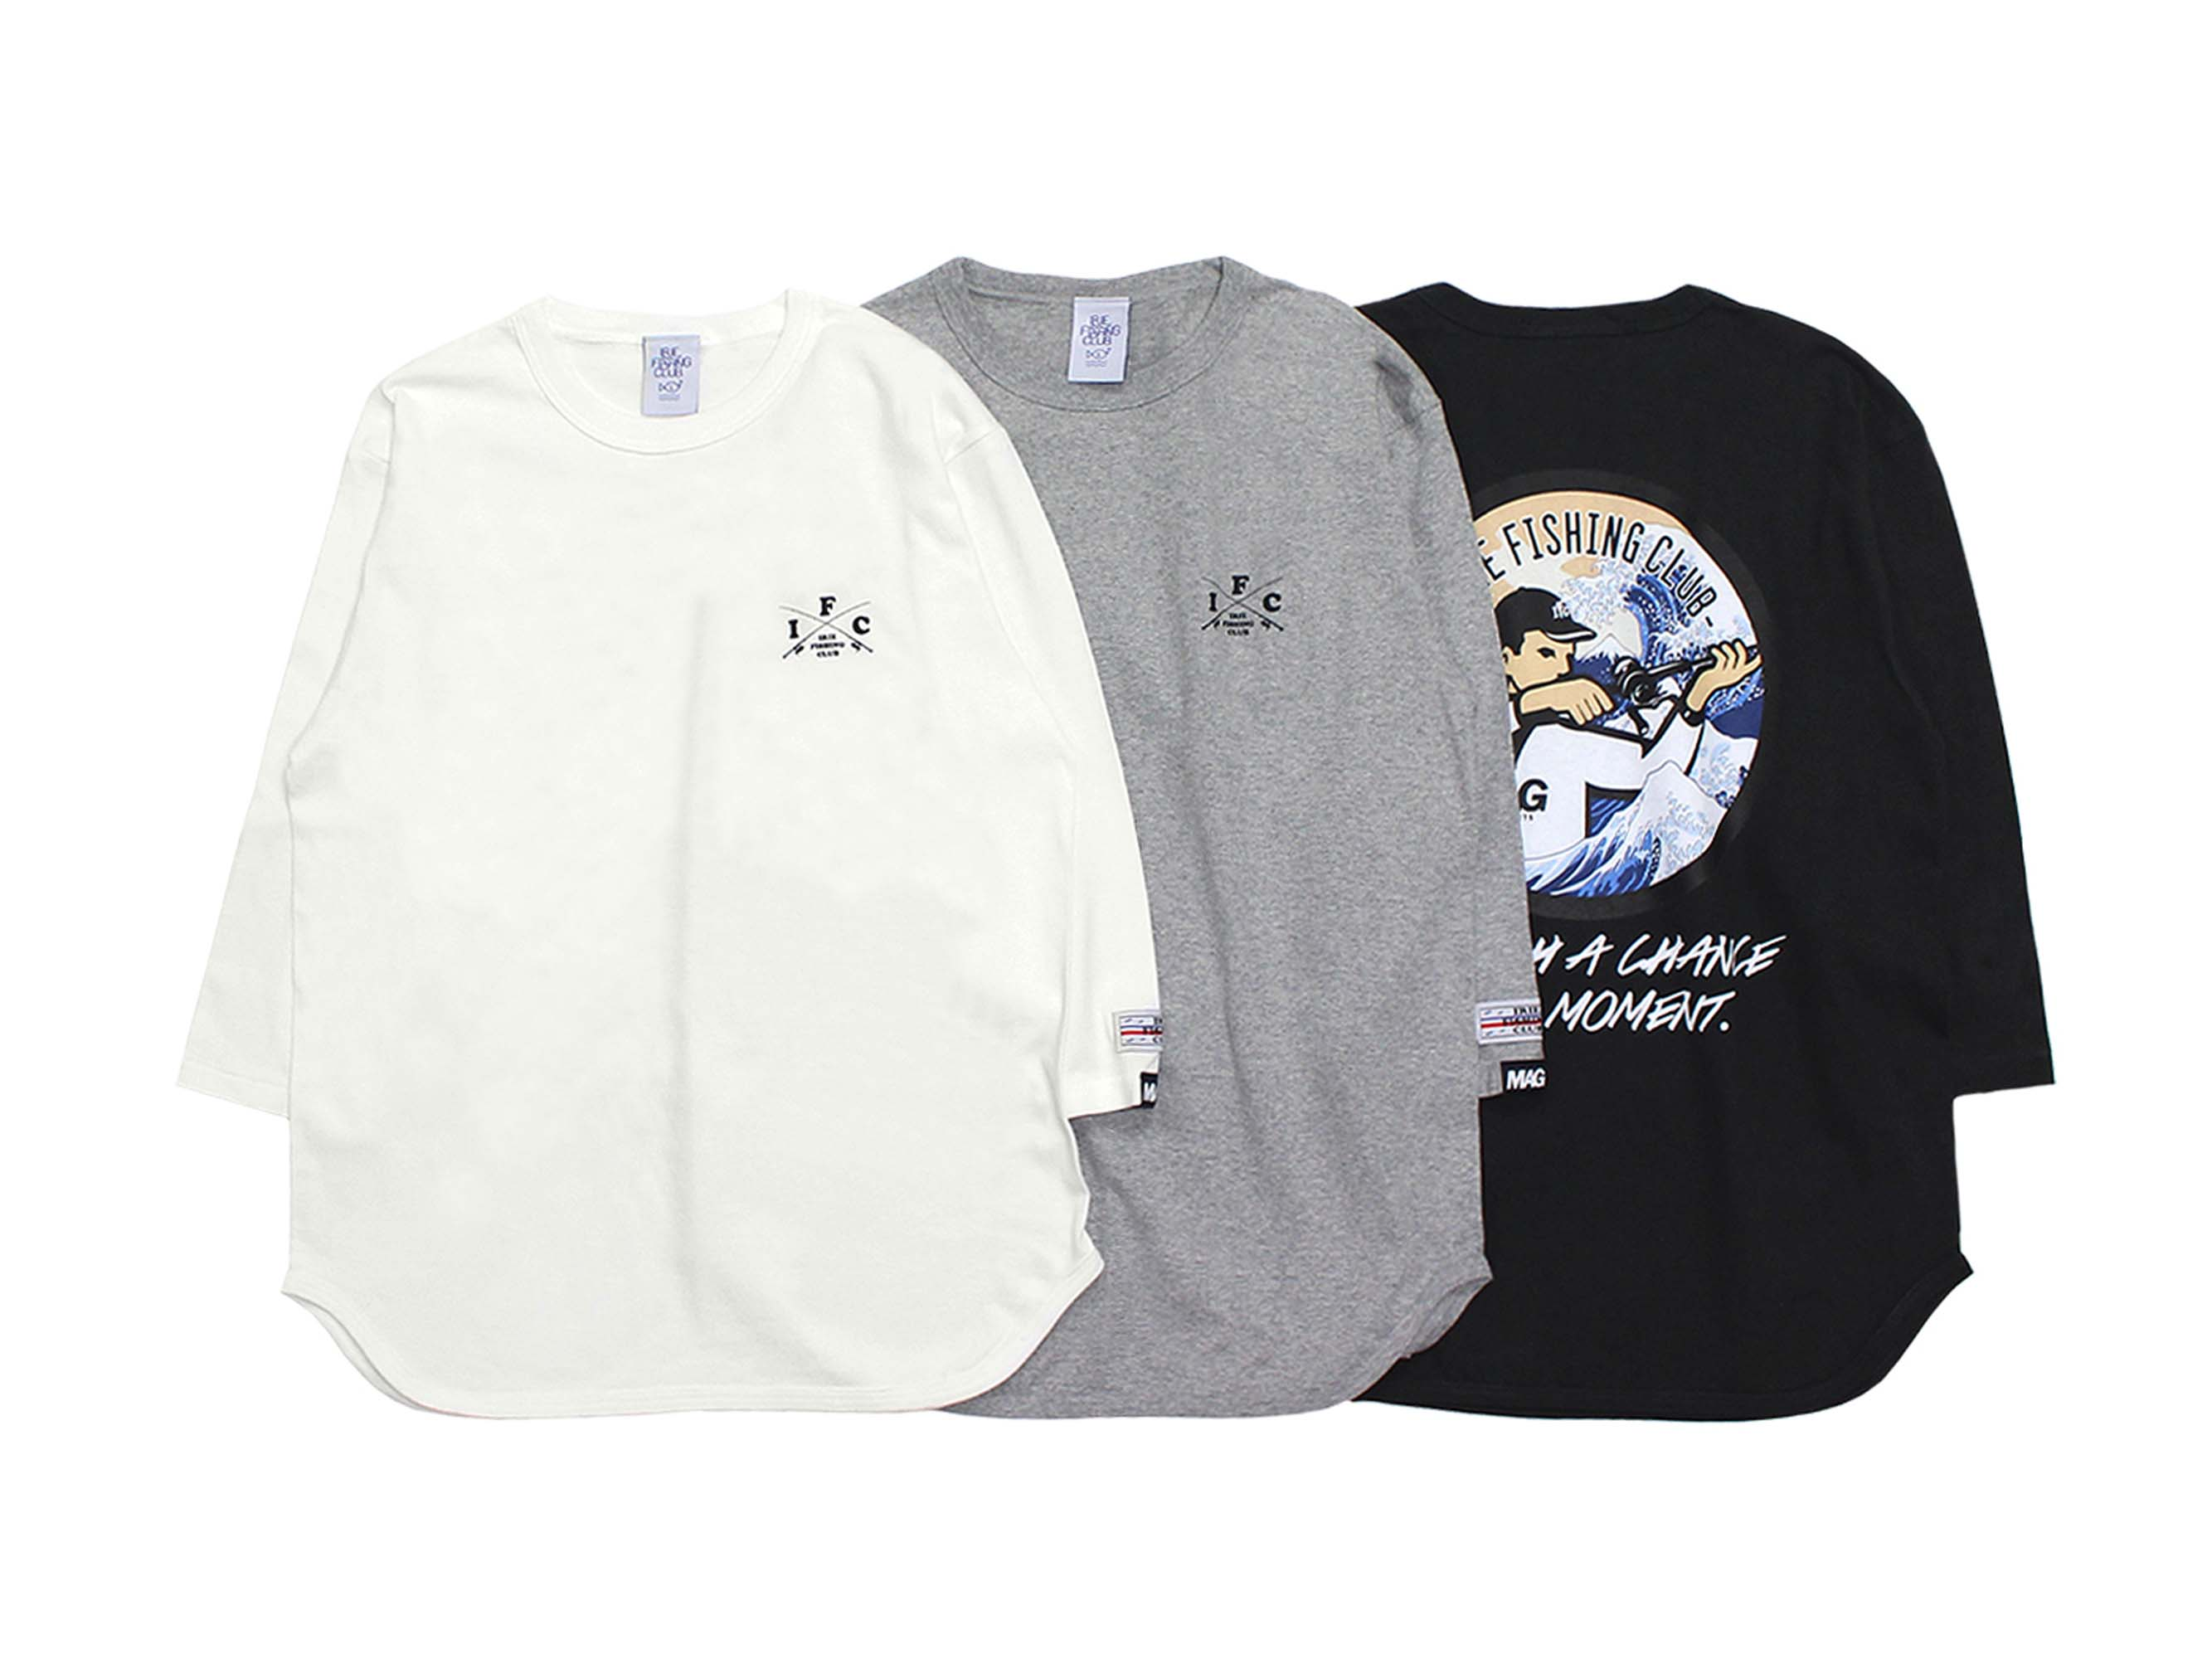 ×MAG BITE SNIPER BOY HOKUSAI 3/4 SLEEVE TEE - IRIE FISHING CLUB